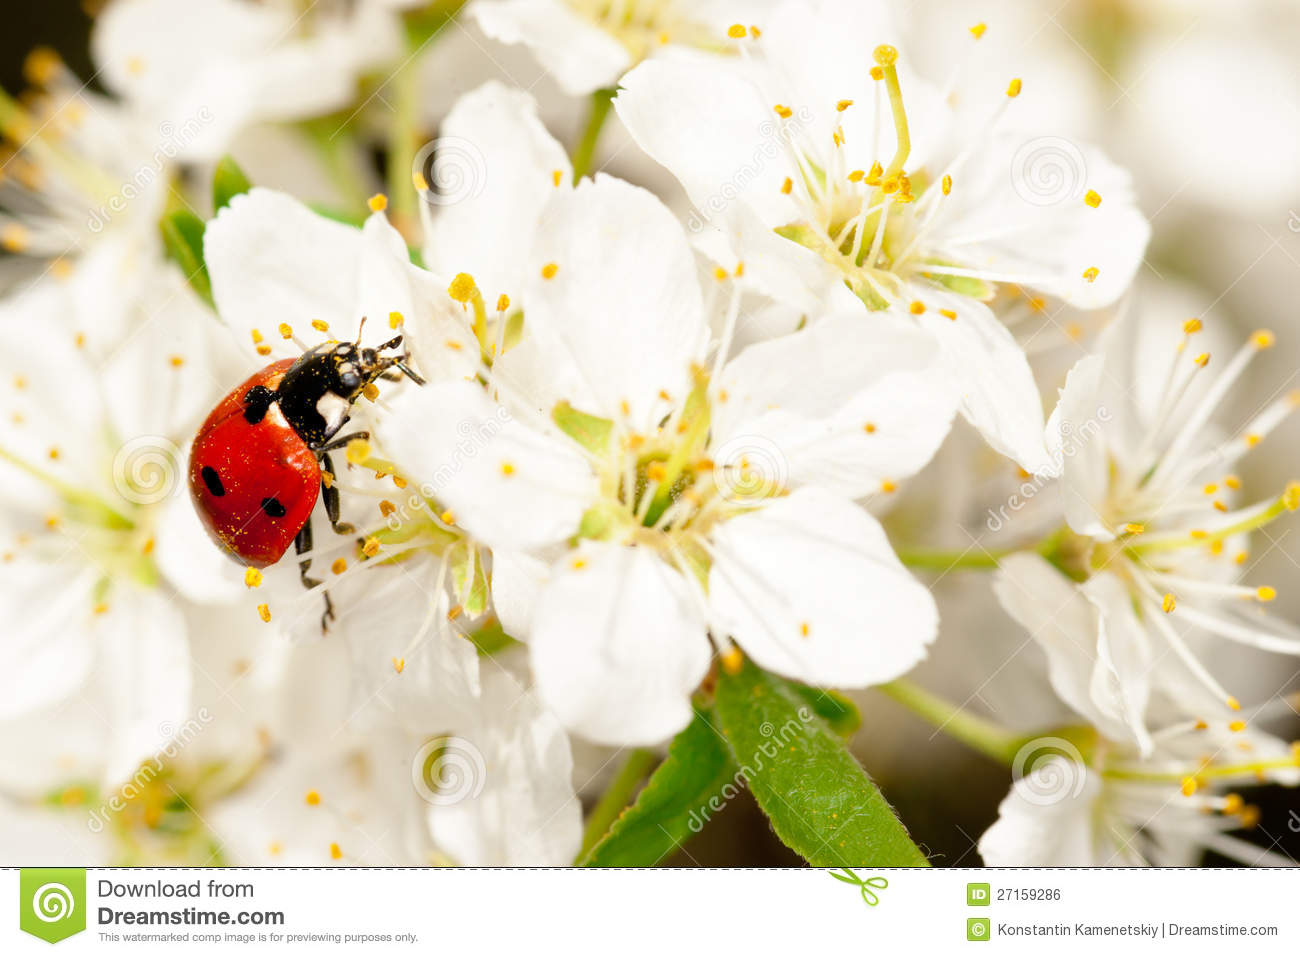 Royalty free stock image ladybug on blooming fruit tree branches